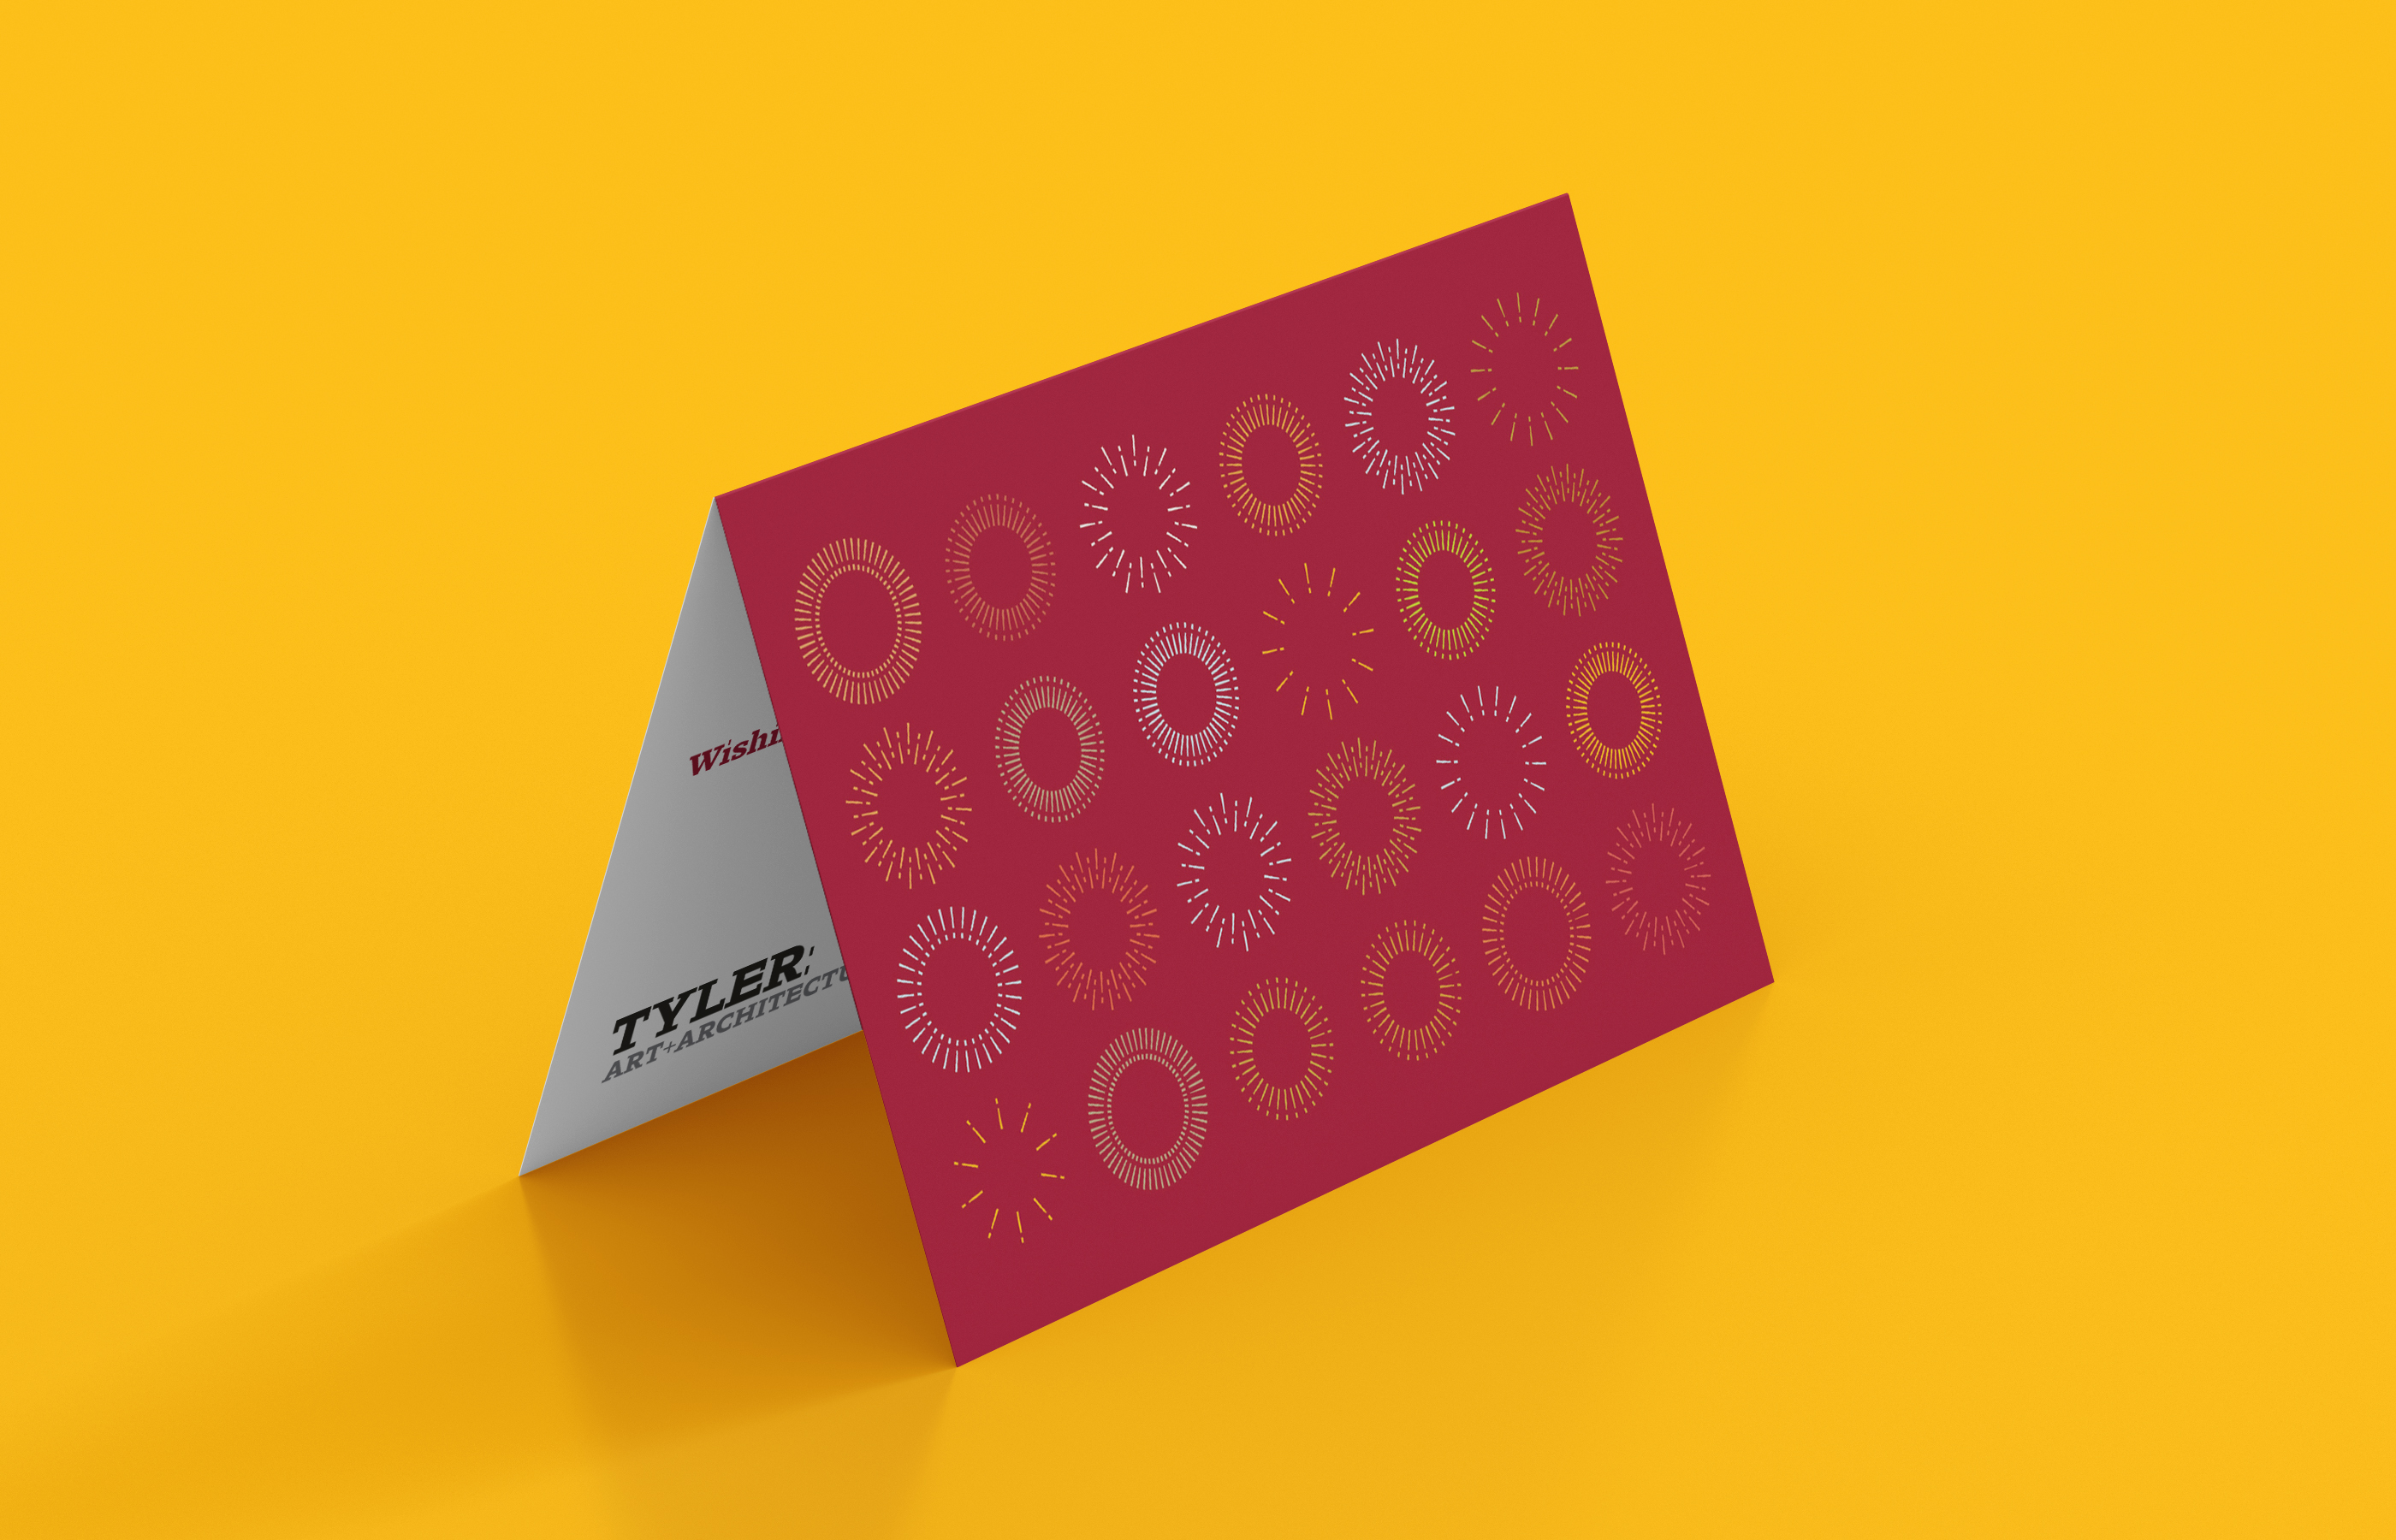 A red folded card on a yellow background features a series of circles made from exclamation points in different colors